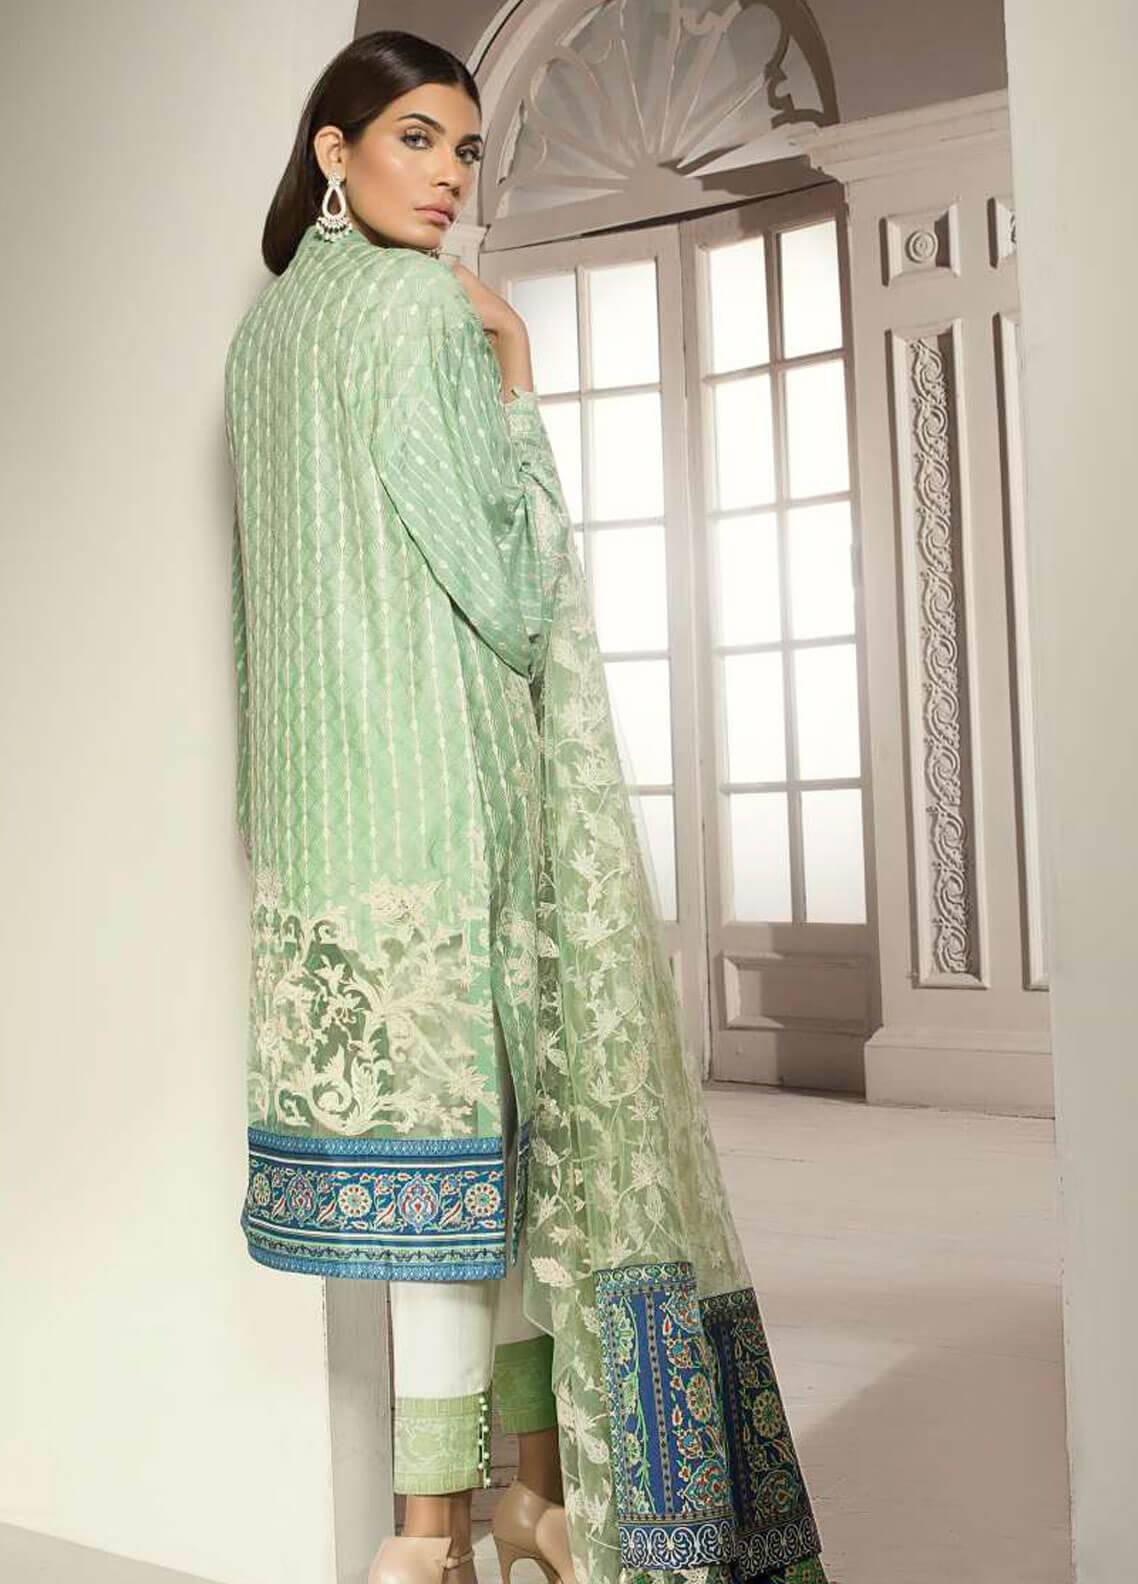 ba58c7e719 ... Mahgul by Al Zohaib Embroidered Khaadi Net Unstitched 3 Piece Suit  MG18F 08 - Formal Collection. < Previous · hover